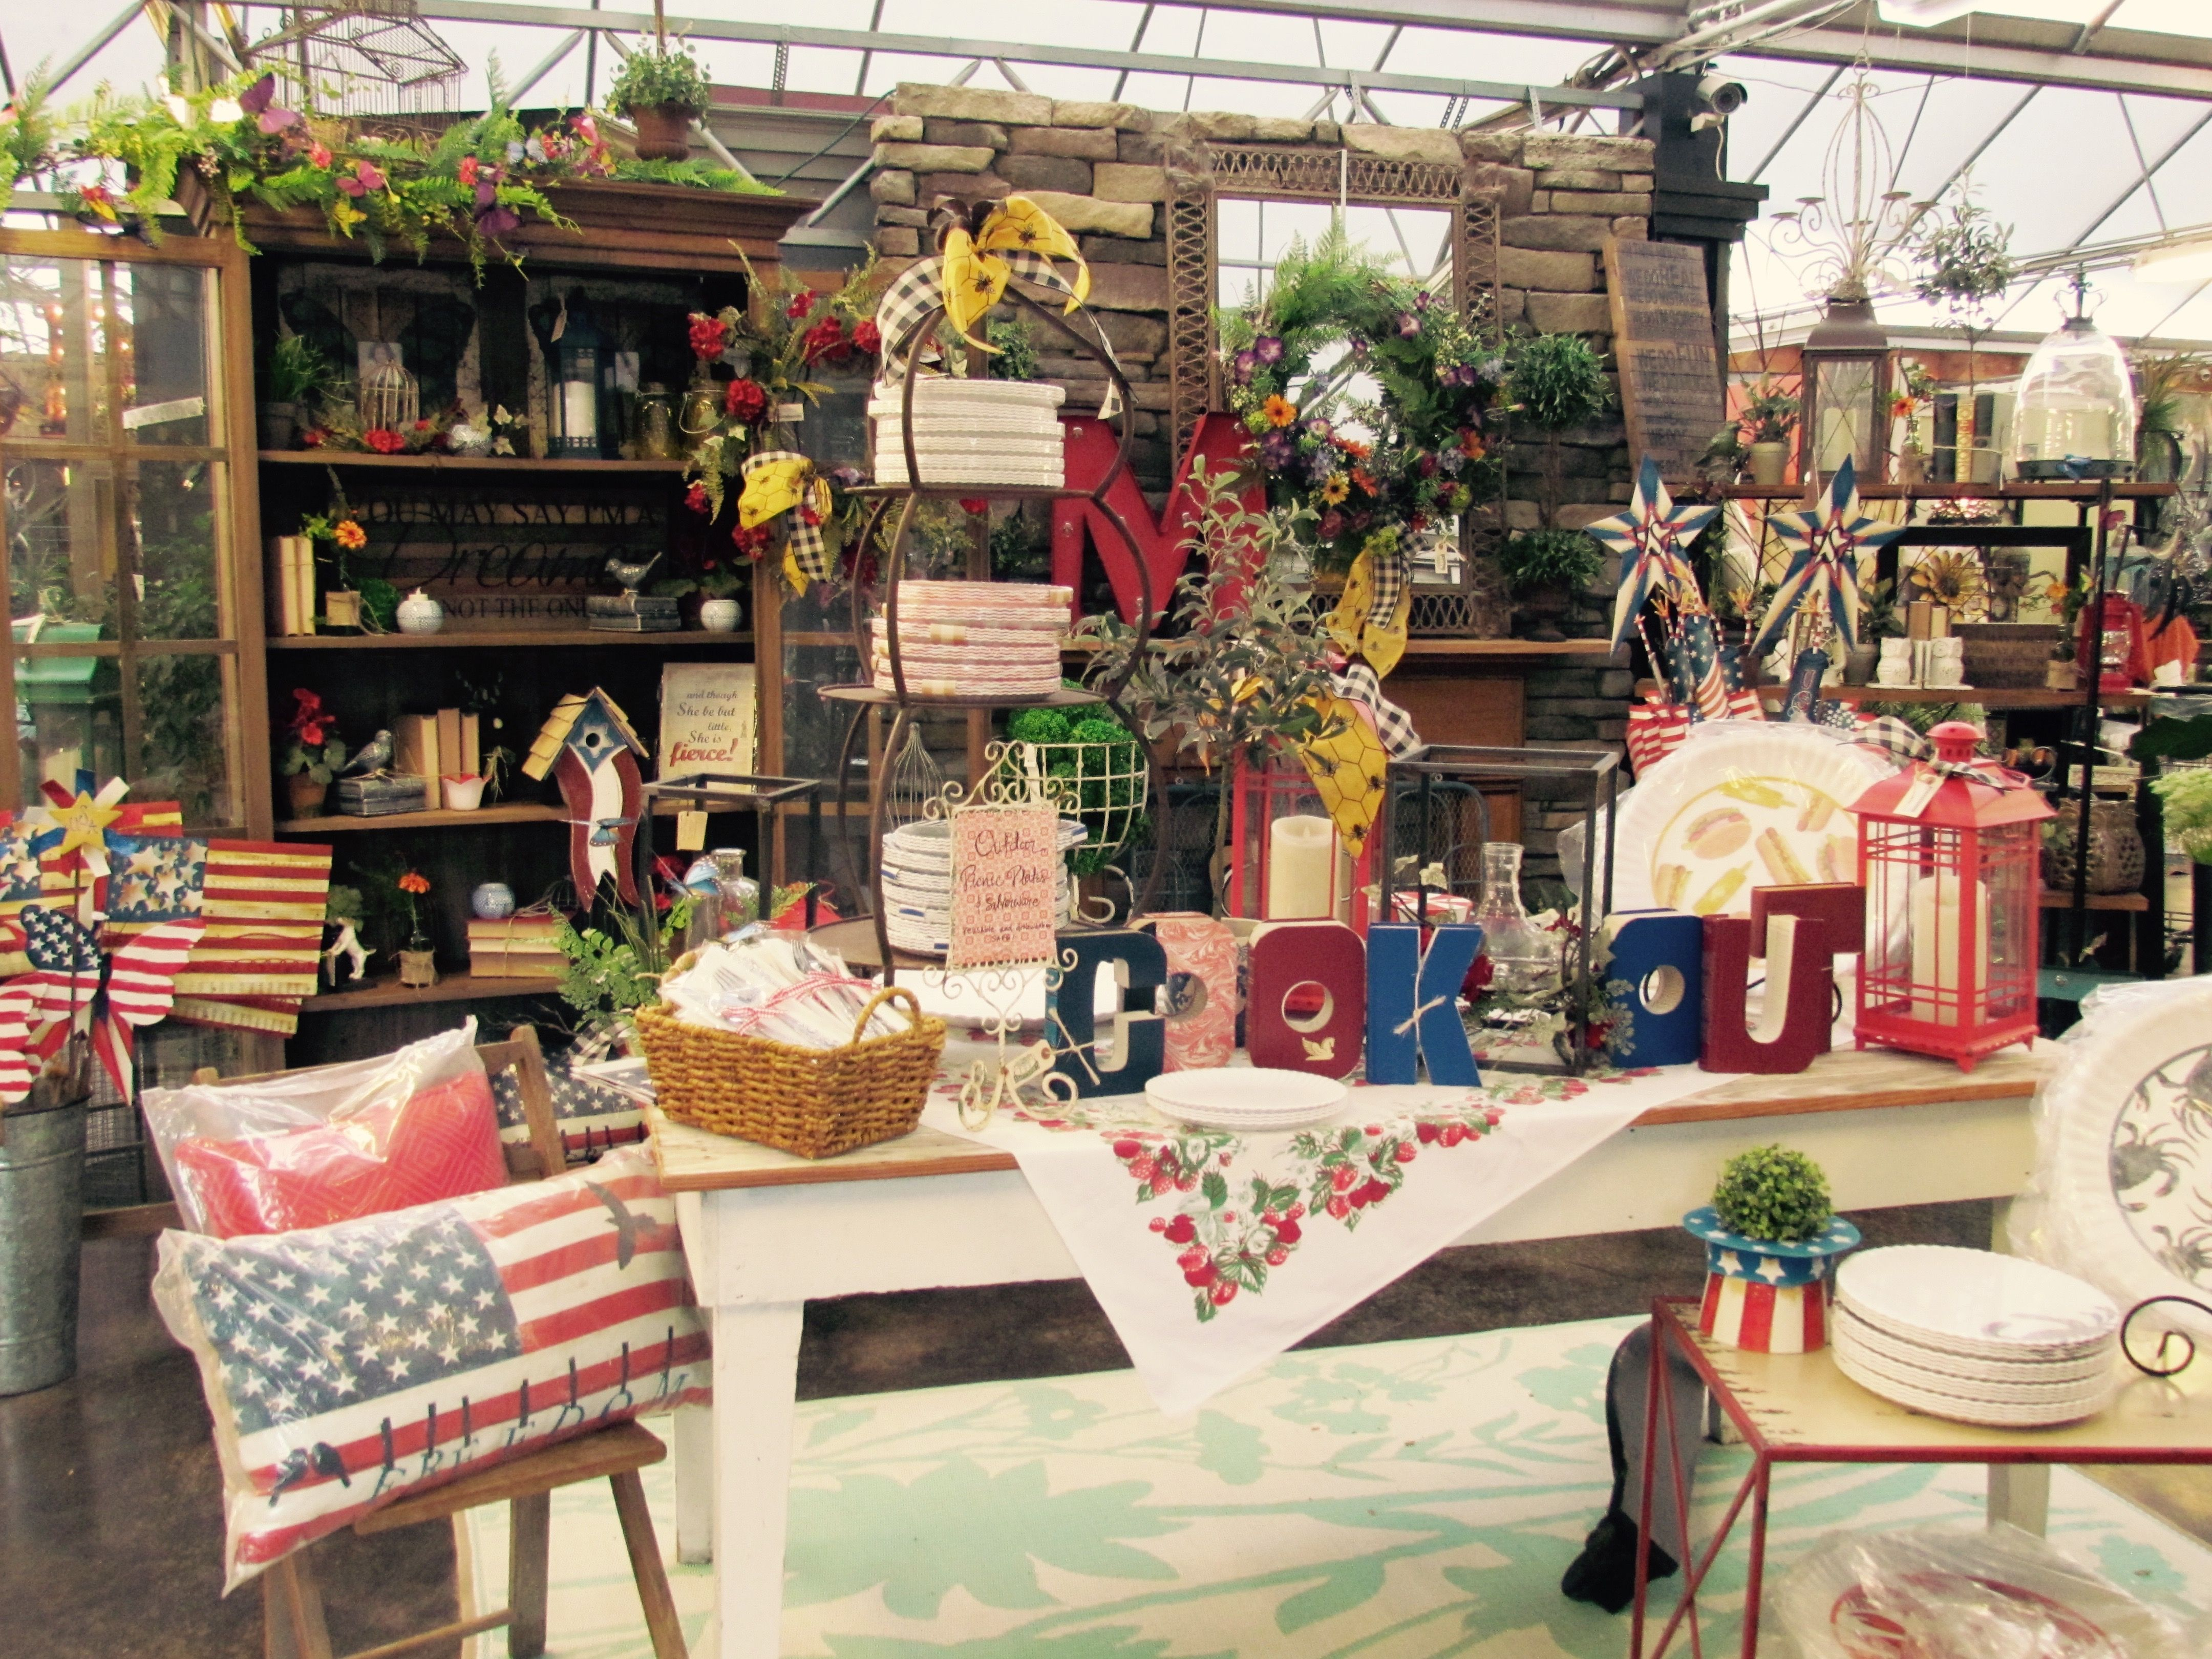 American Flags And Picnic Decor Calls For A Great Memorial Day